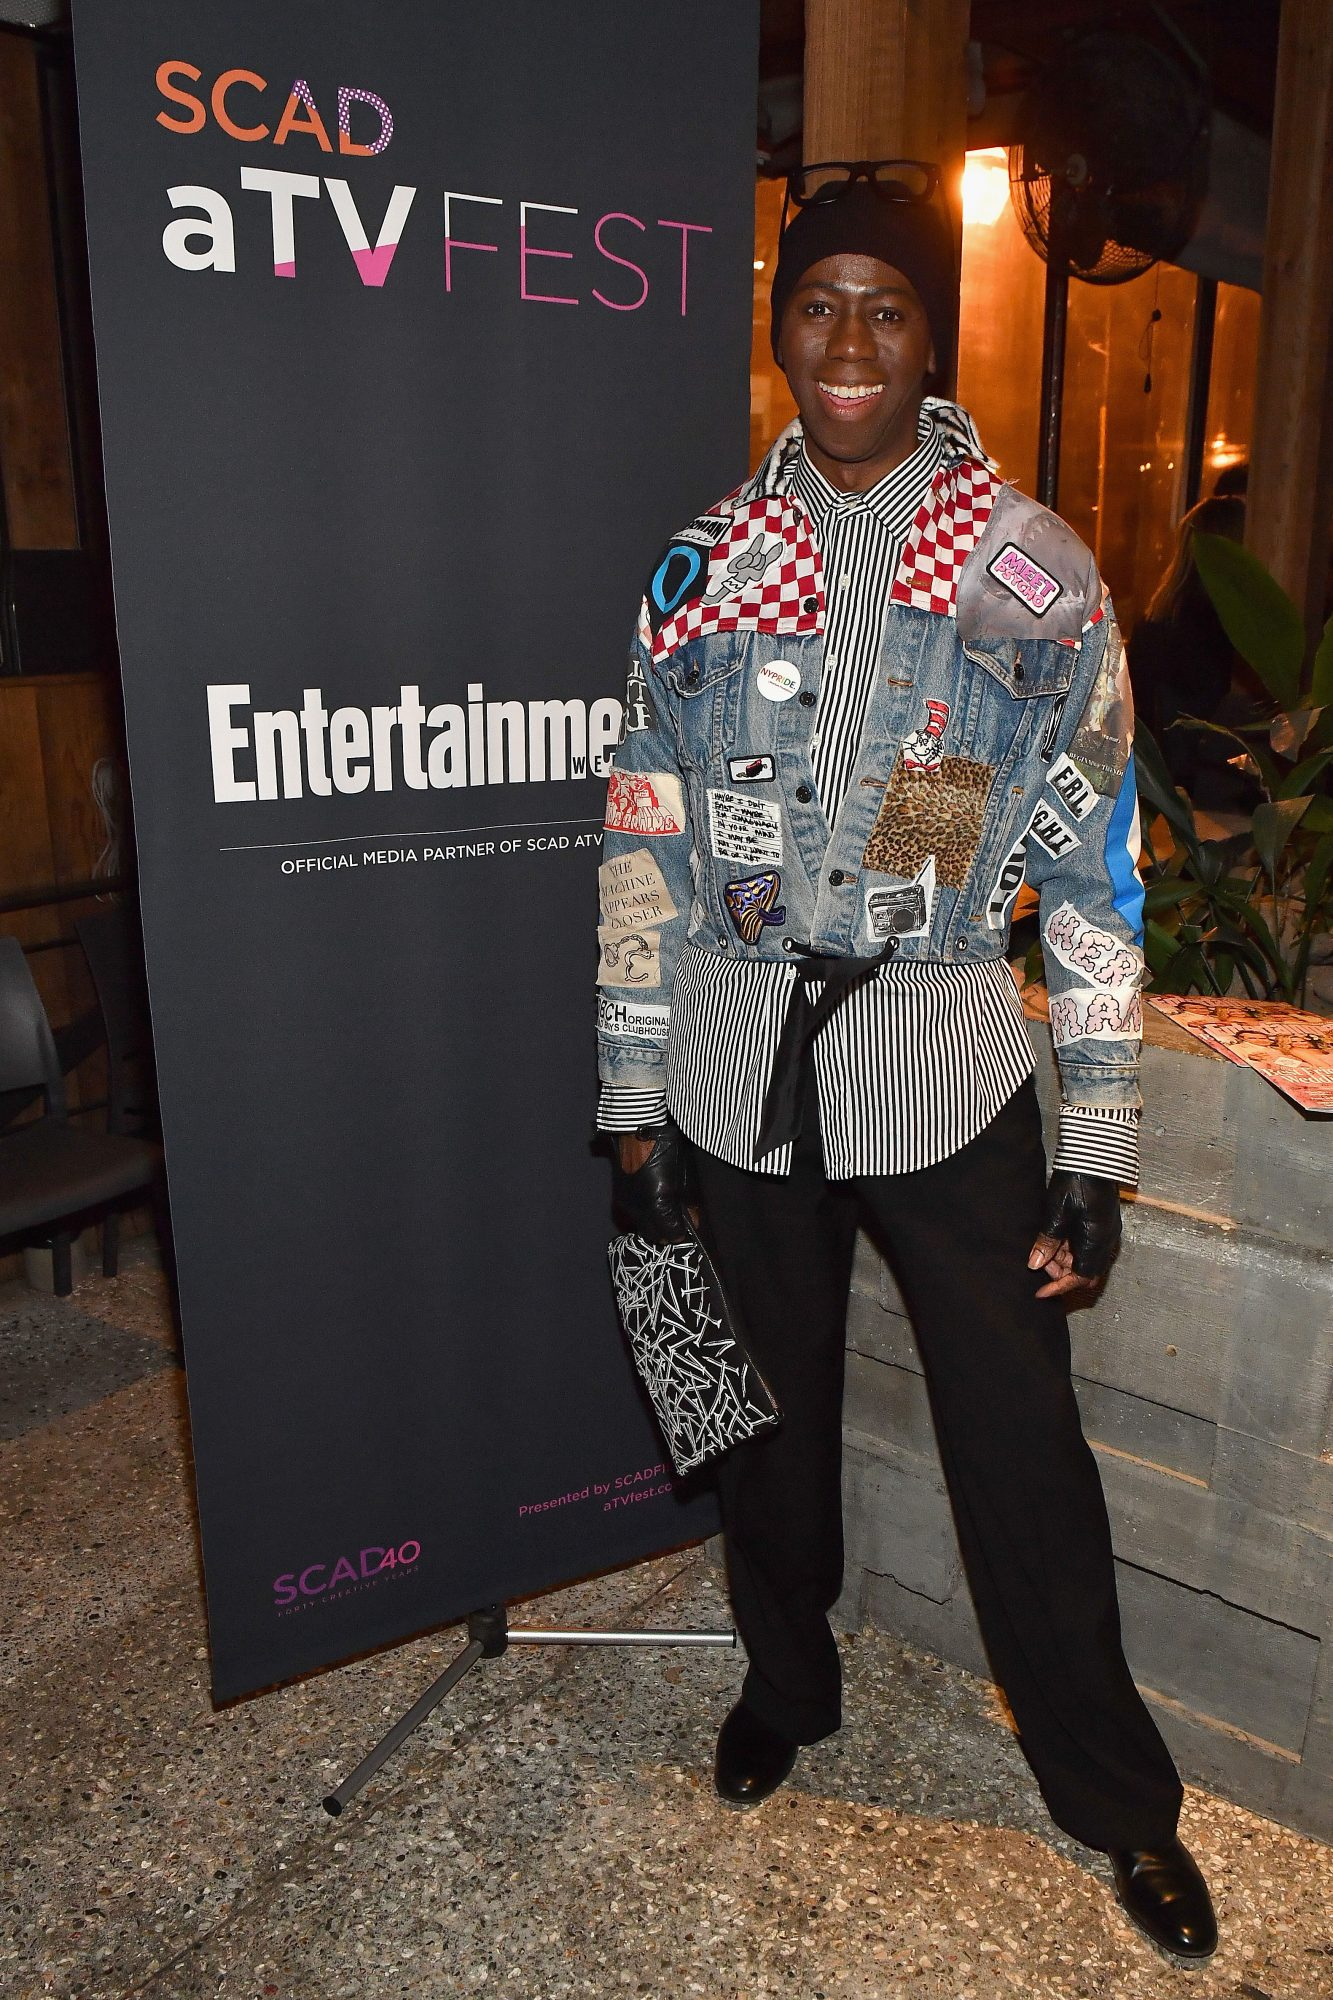 J. Alexander at the SCAD aTVfest and Entertainment Weekly party at Lure